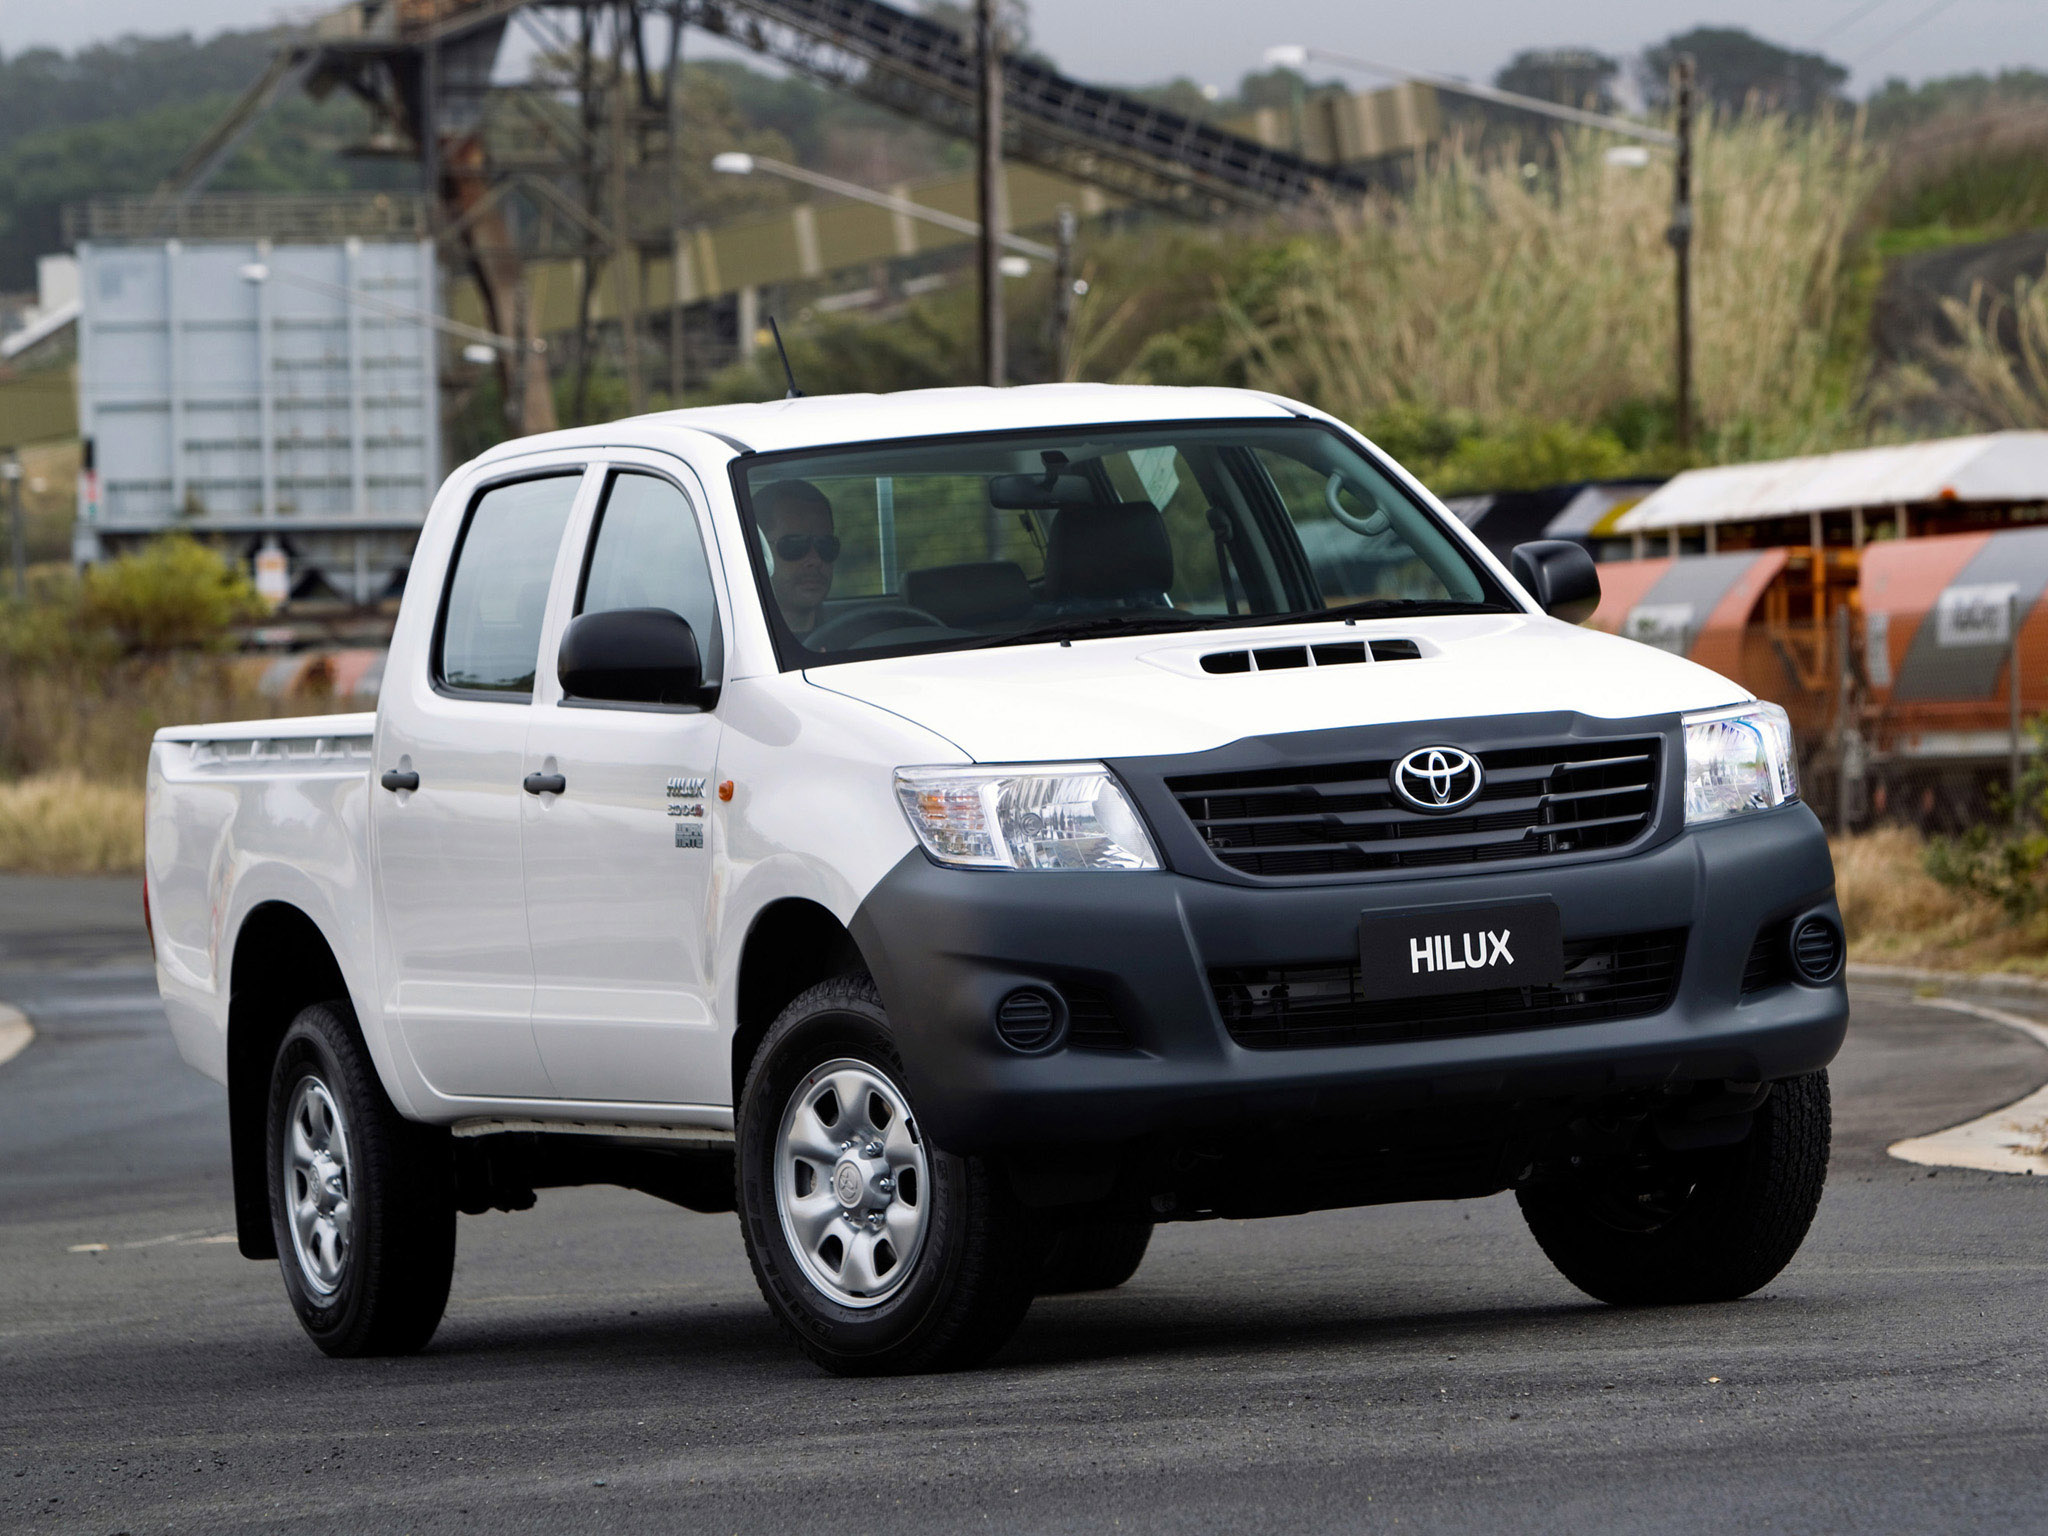 Toyota Hilux Workmate Double Cab 4x4 2011 P O 08